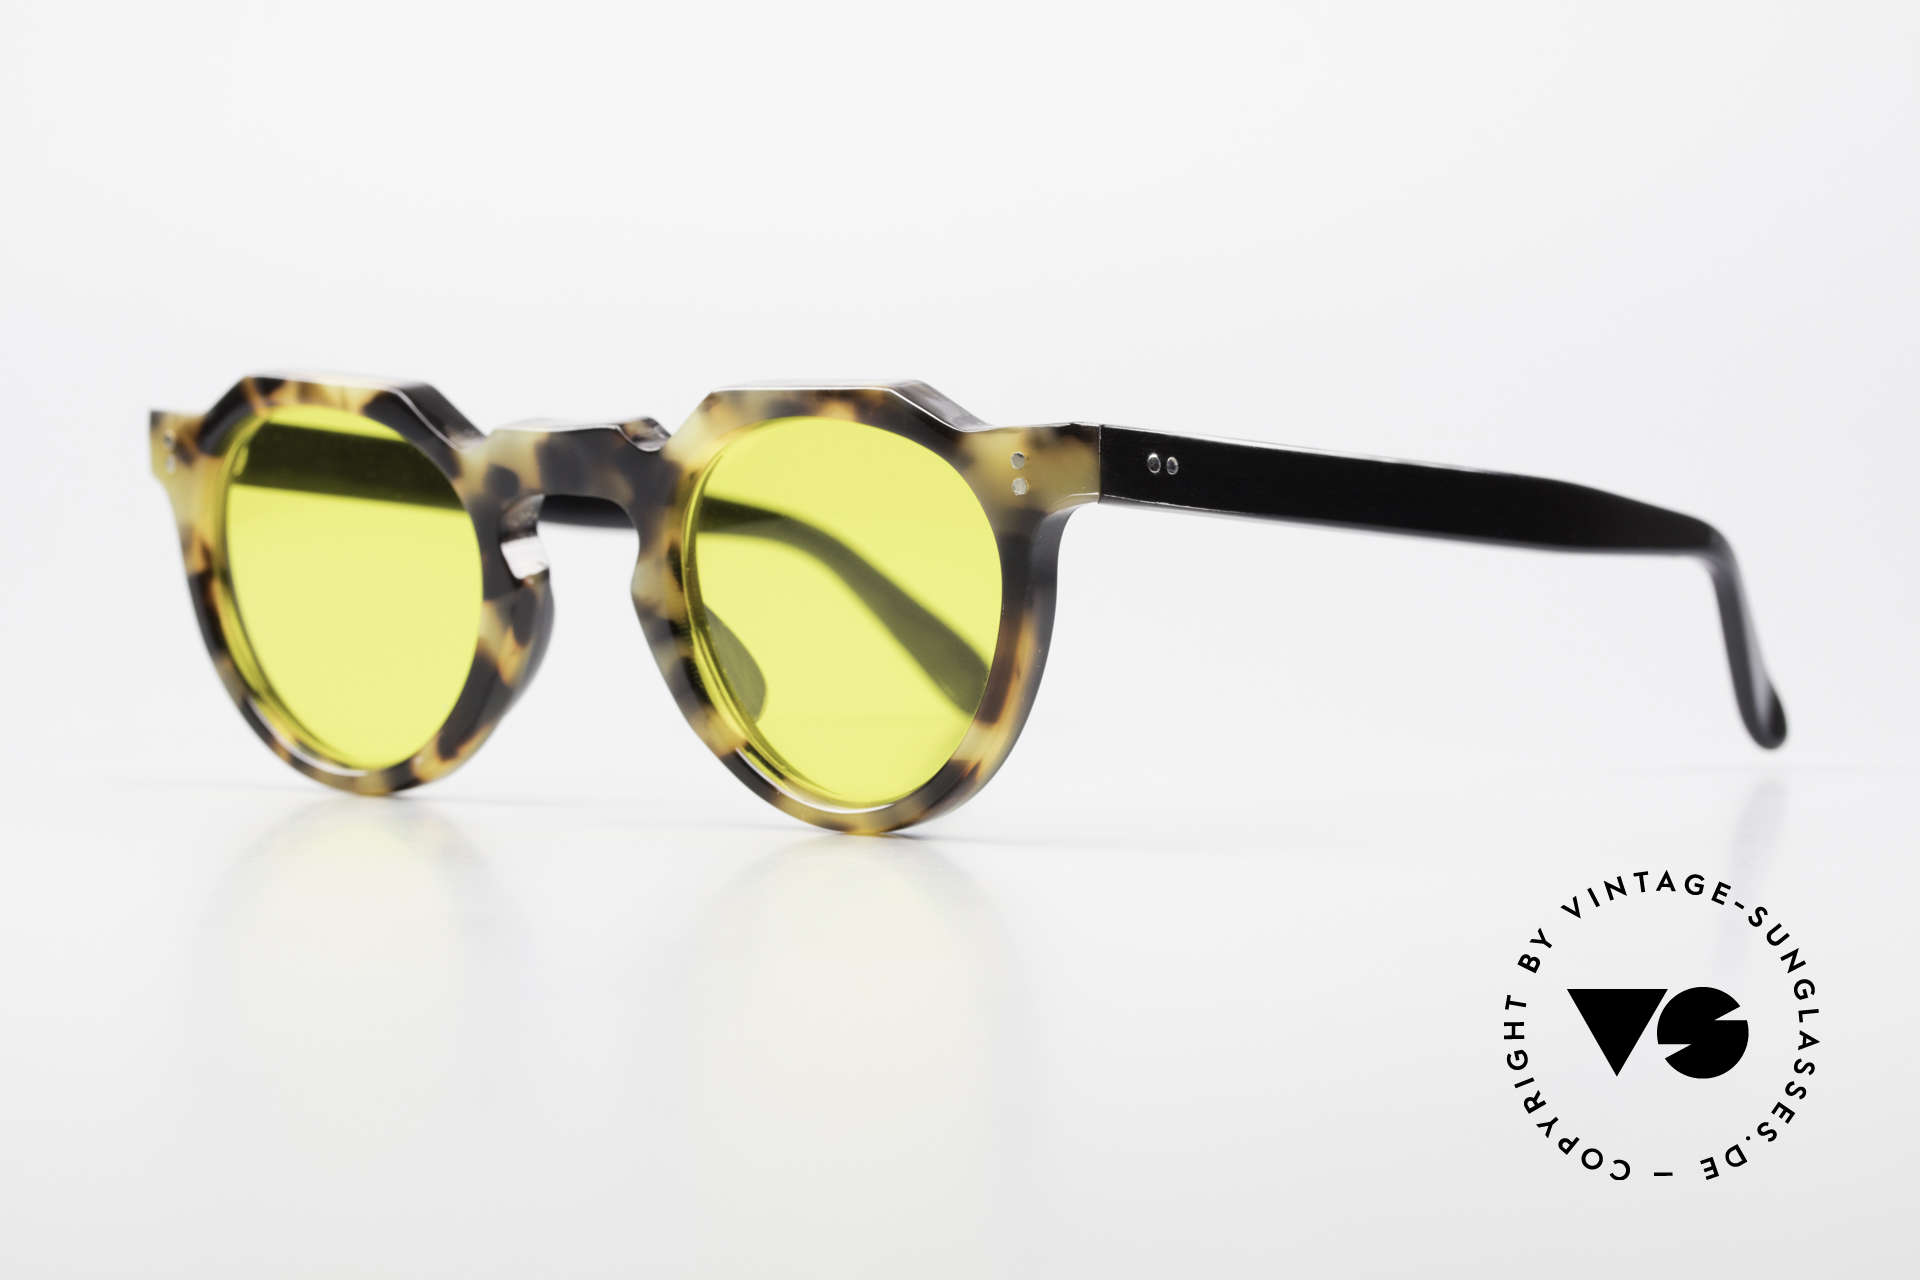 Lesca Panto 6mm 60's Panto Sunglasses France, made in France; WITHOUT any MARKS or inscriptions, Made for Men and Women